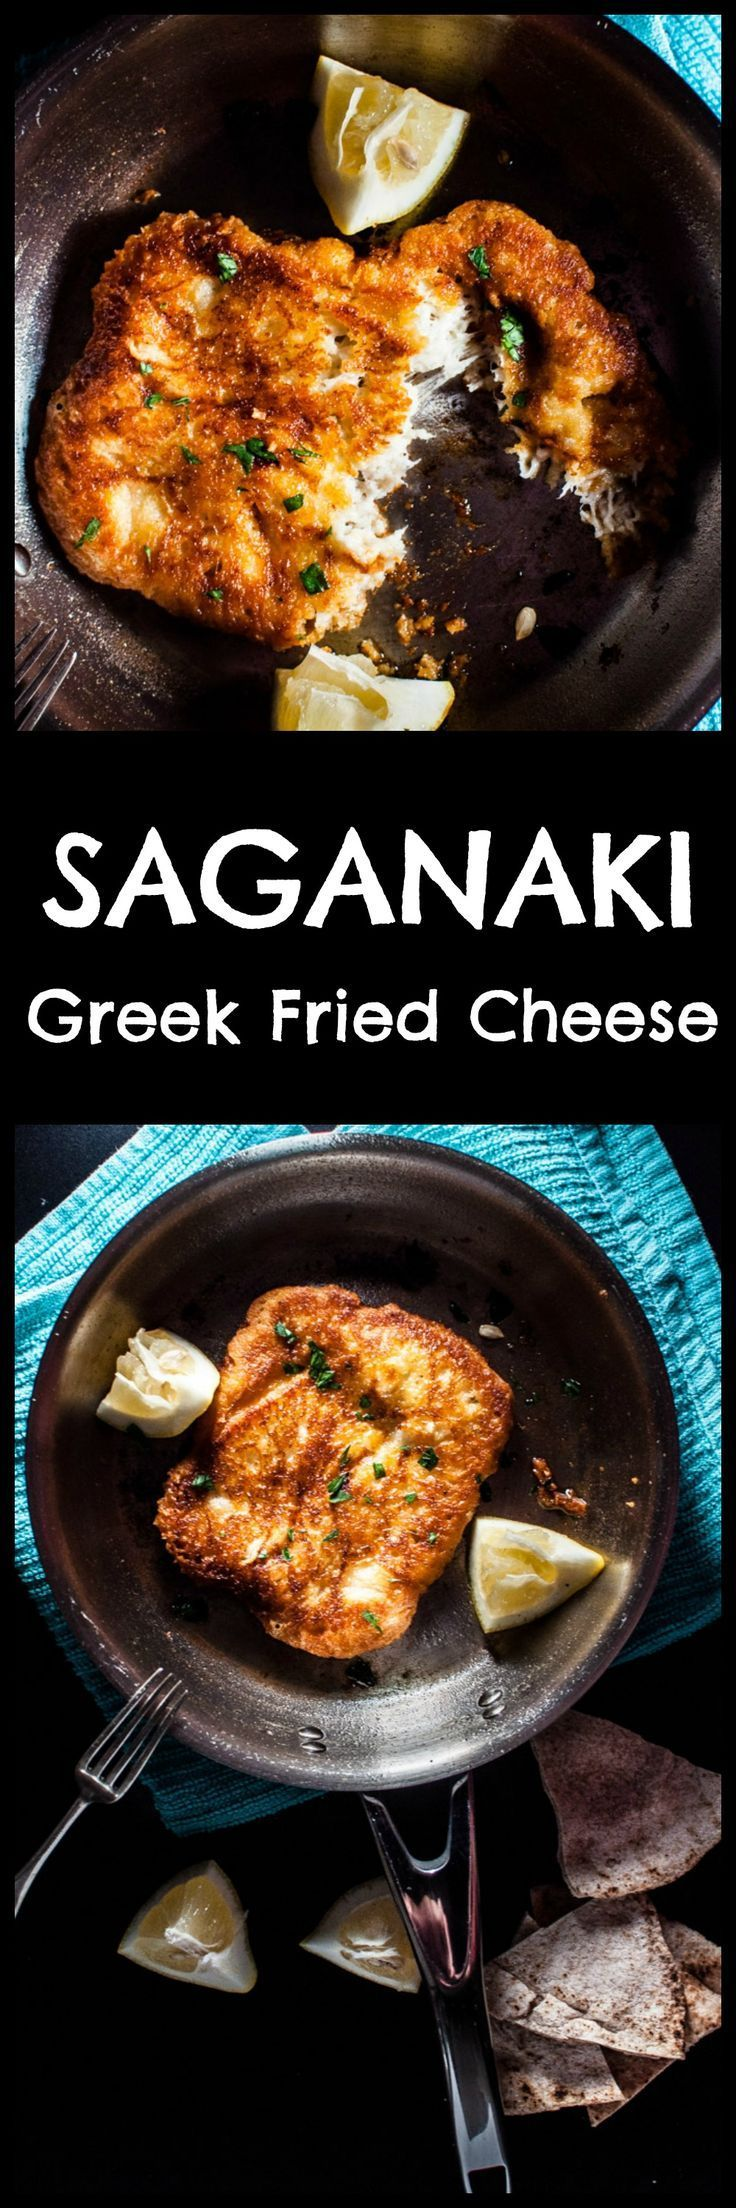 85 best greek food recipes images on pinterest greek food saganaki greek fried cheese is crunchy on the outside and melty on the inside greek food recipesdinner forumfinder Images